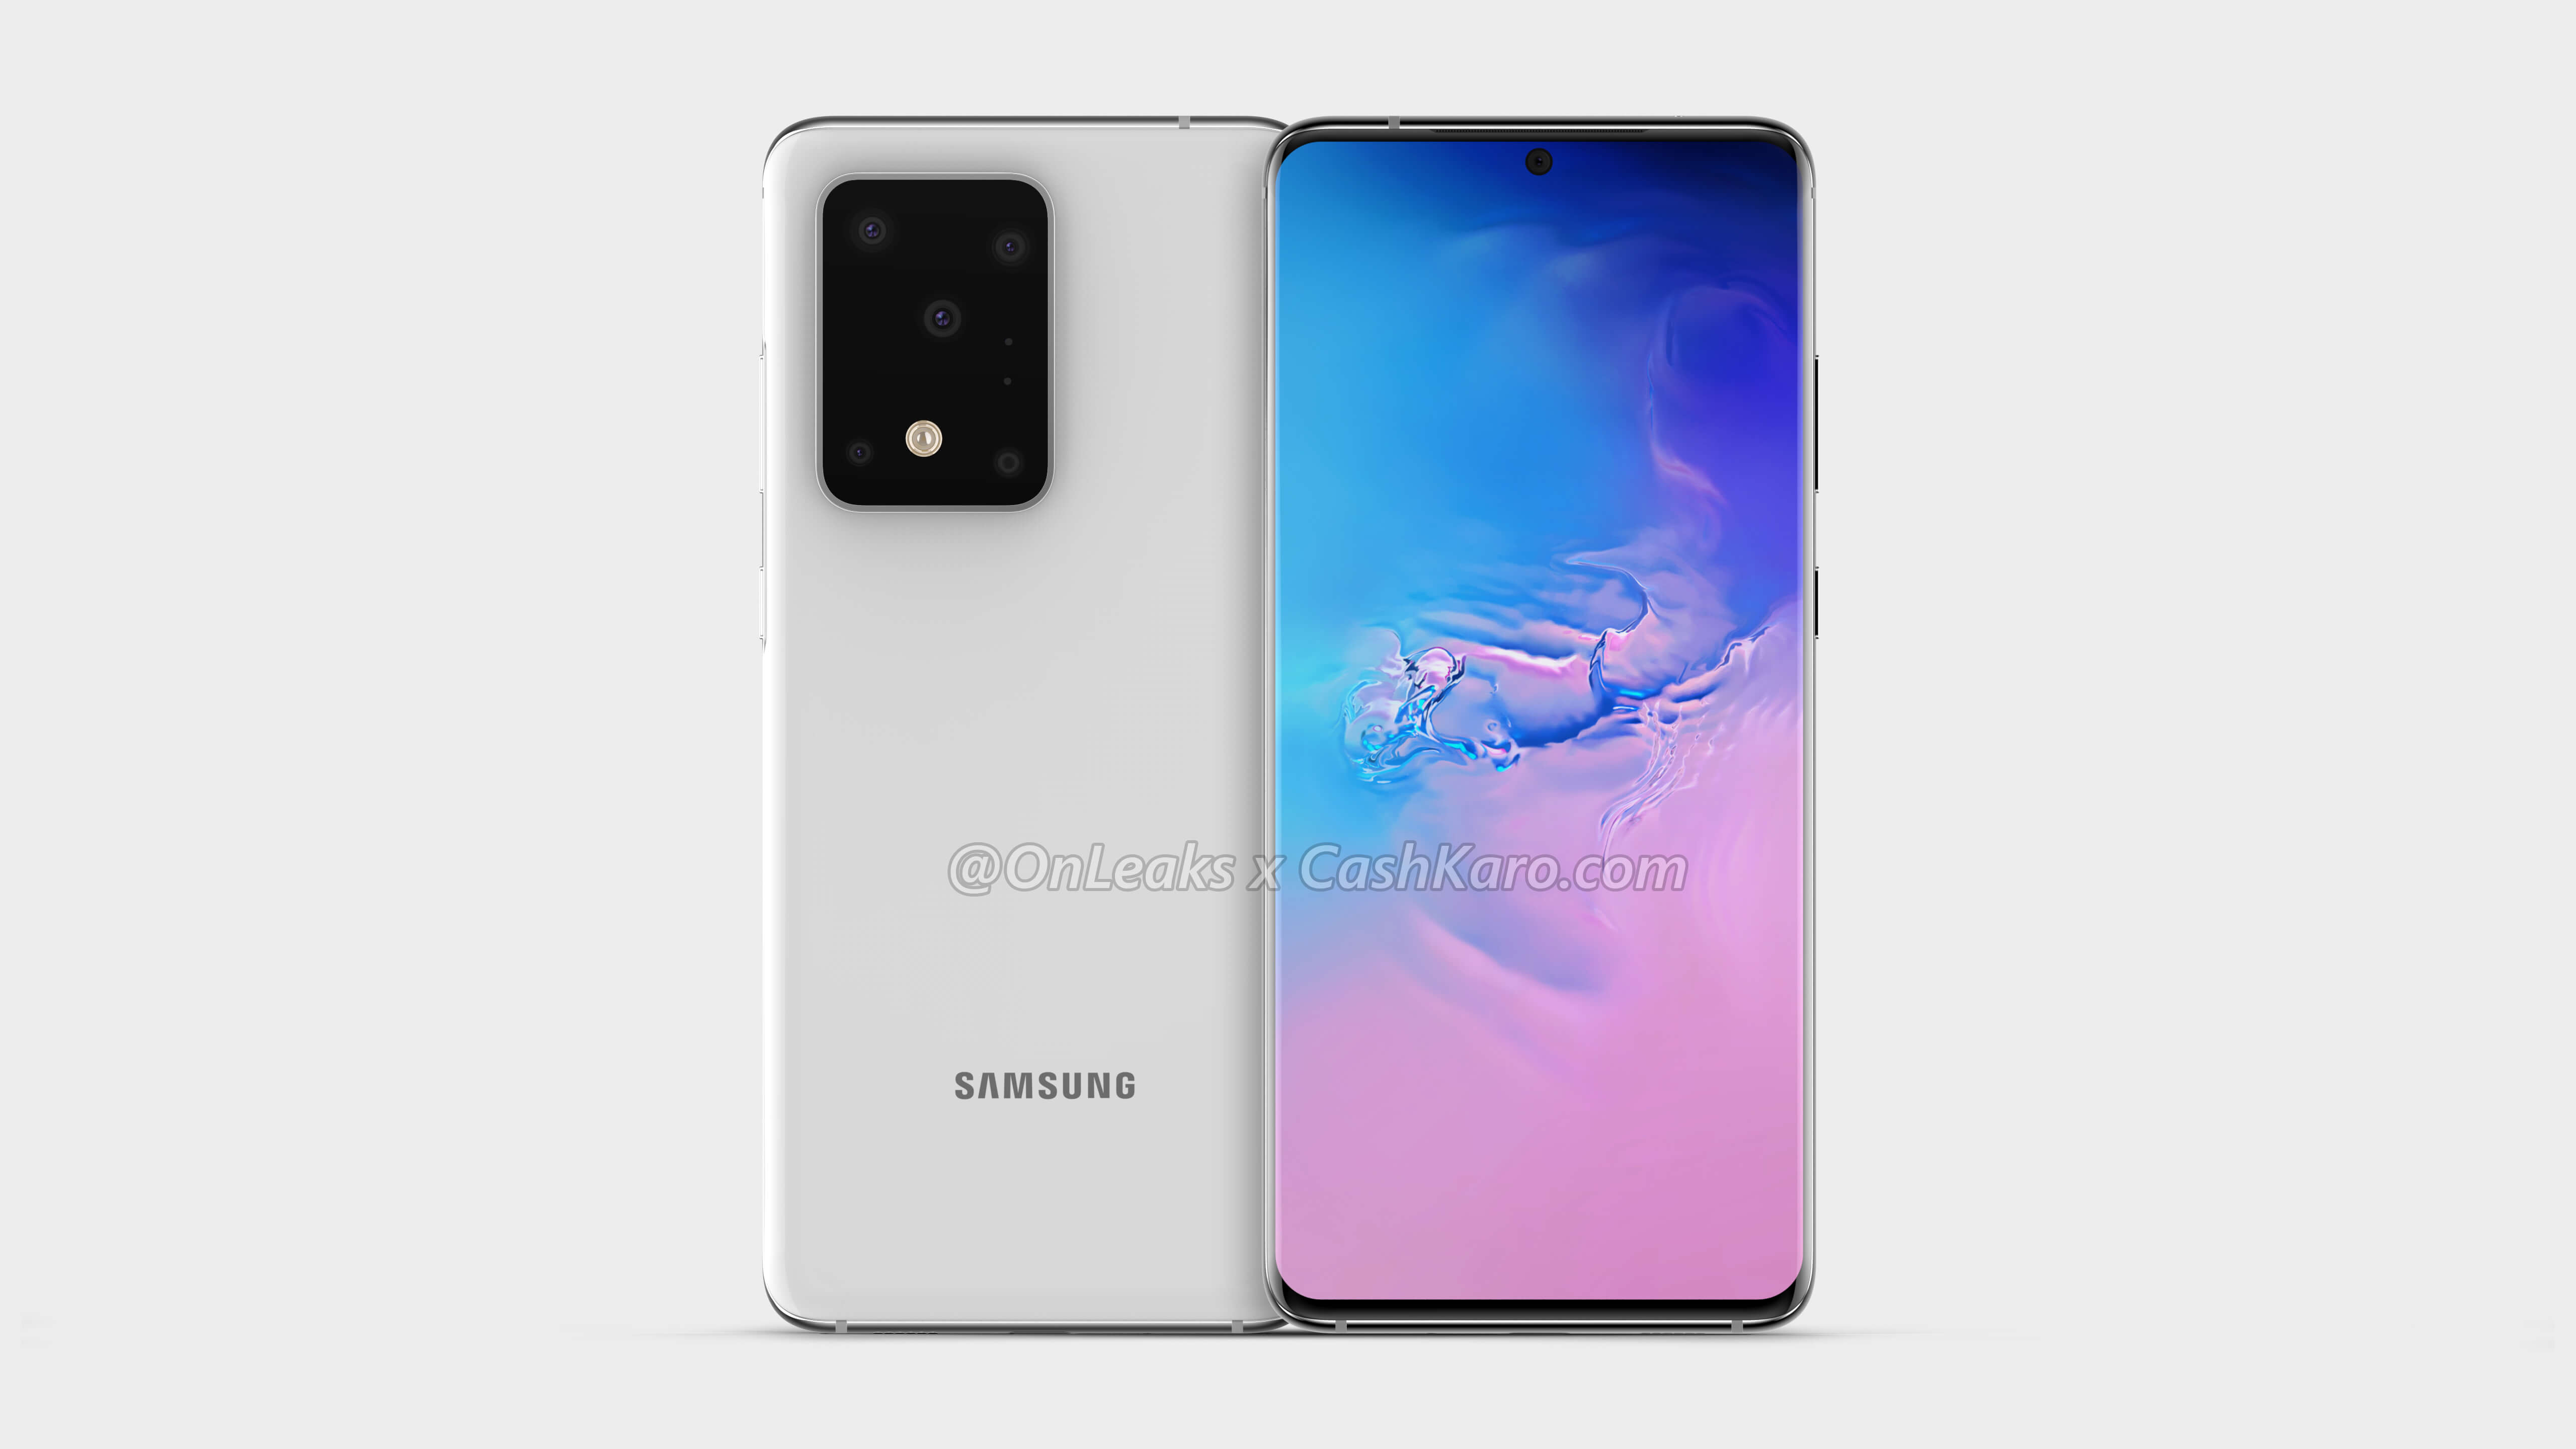 [Updated:] Samsung Galaxy S11: Specs, Updates, Leaks, Rumors, Camera, Release Date, Battery, Pricing and More